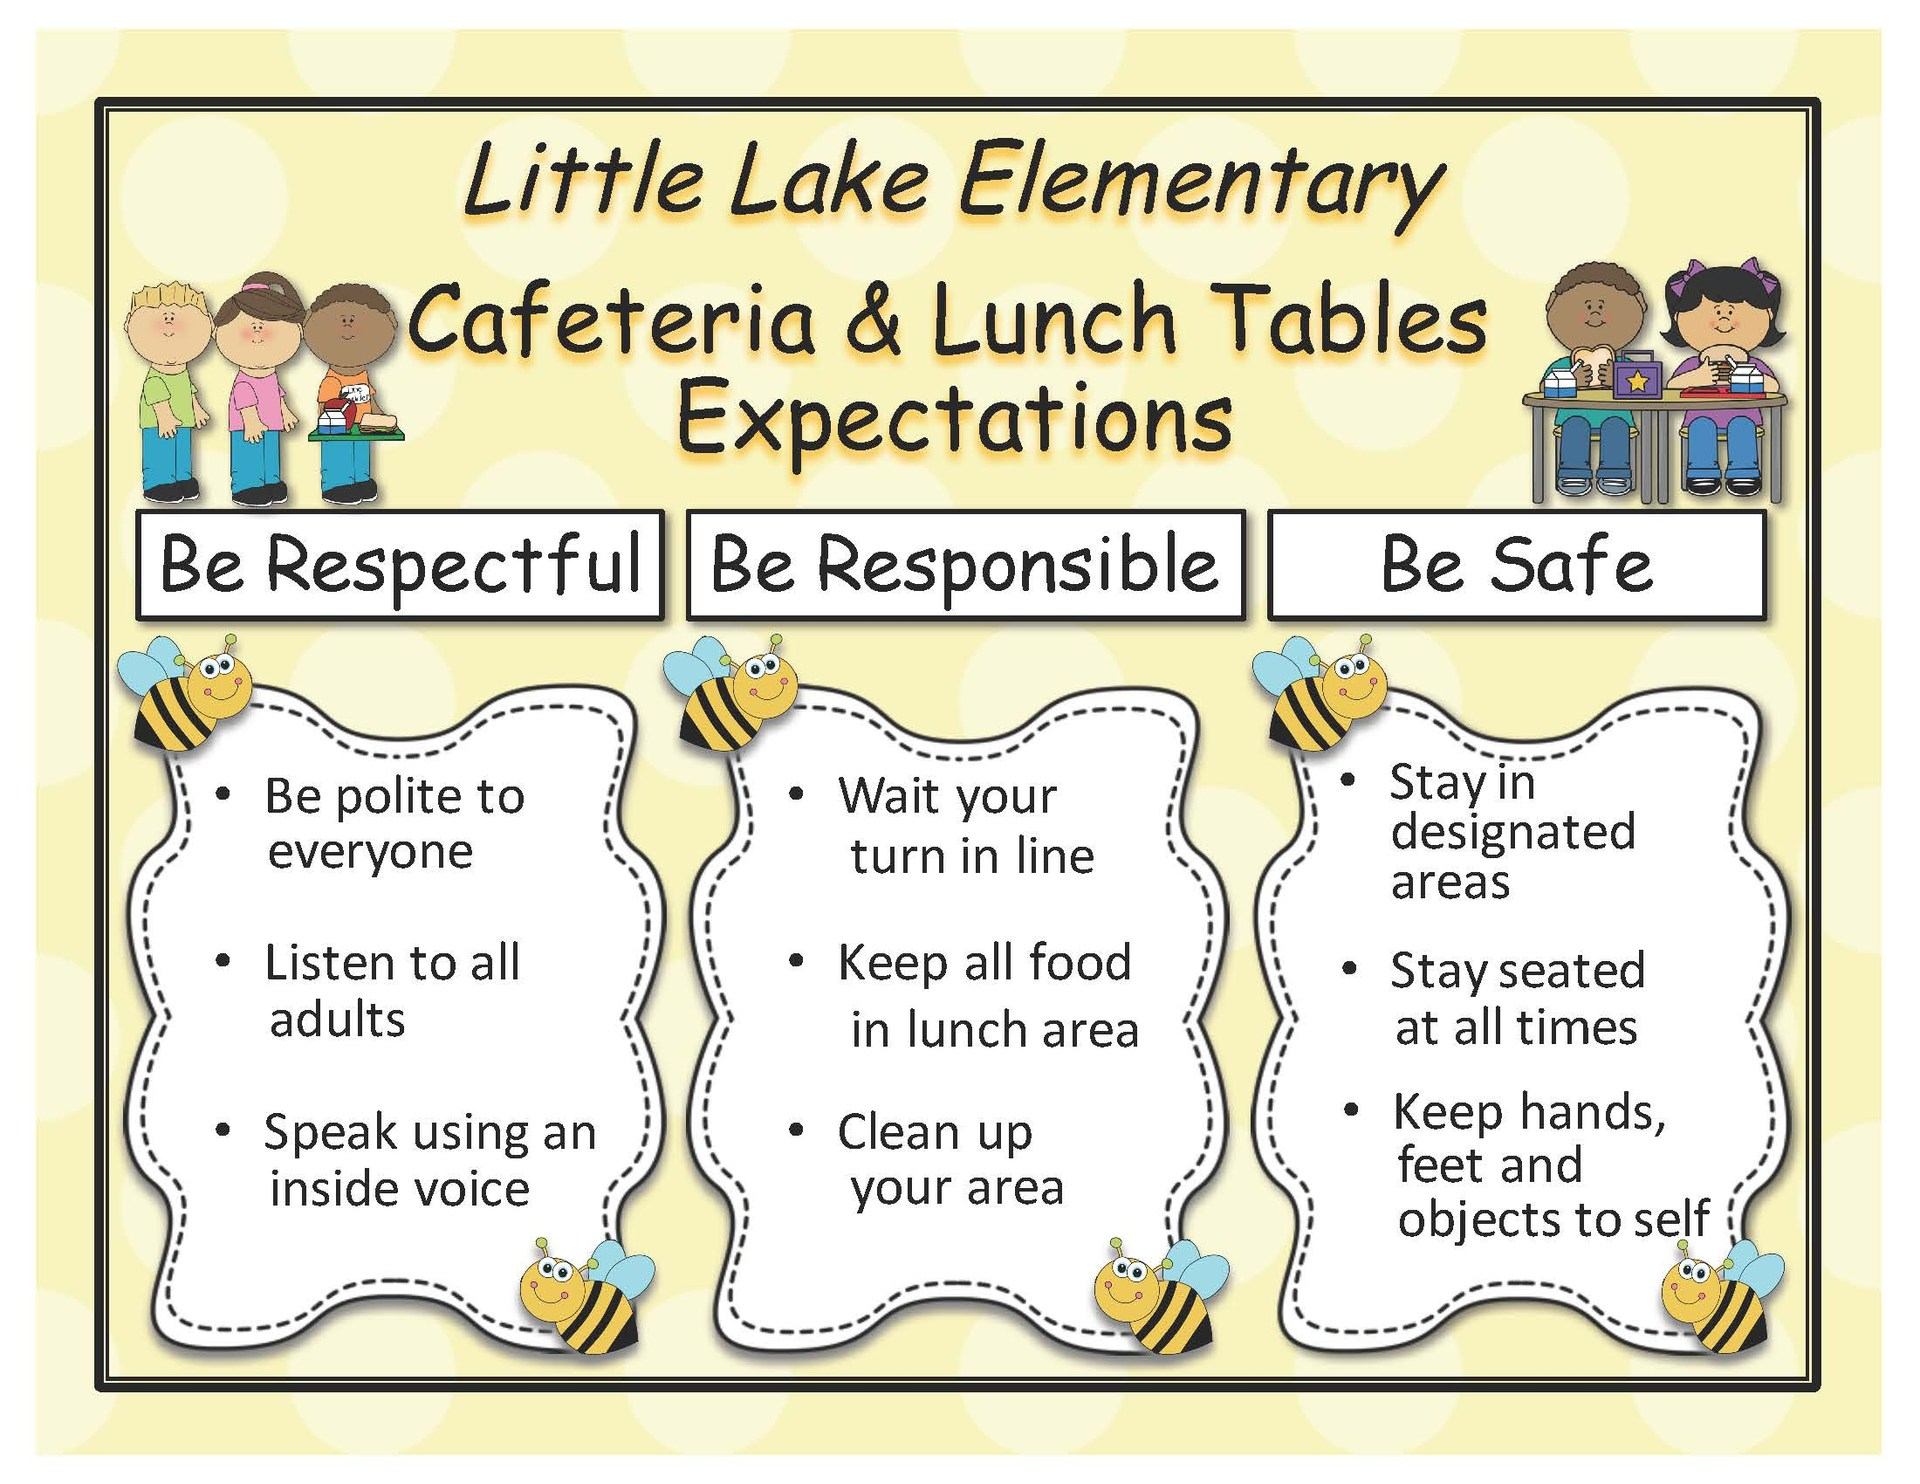 PBIS Behavioral Expectations for how students behave in the cafeteria and at the lunch tables.